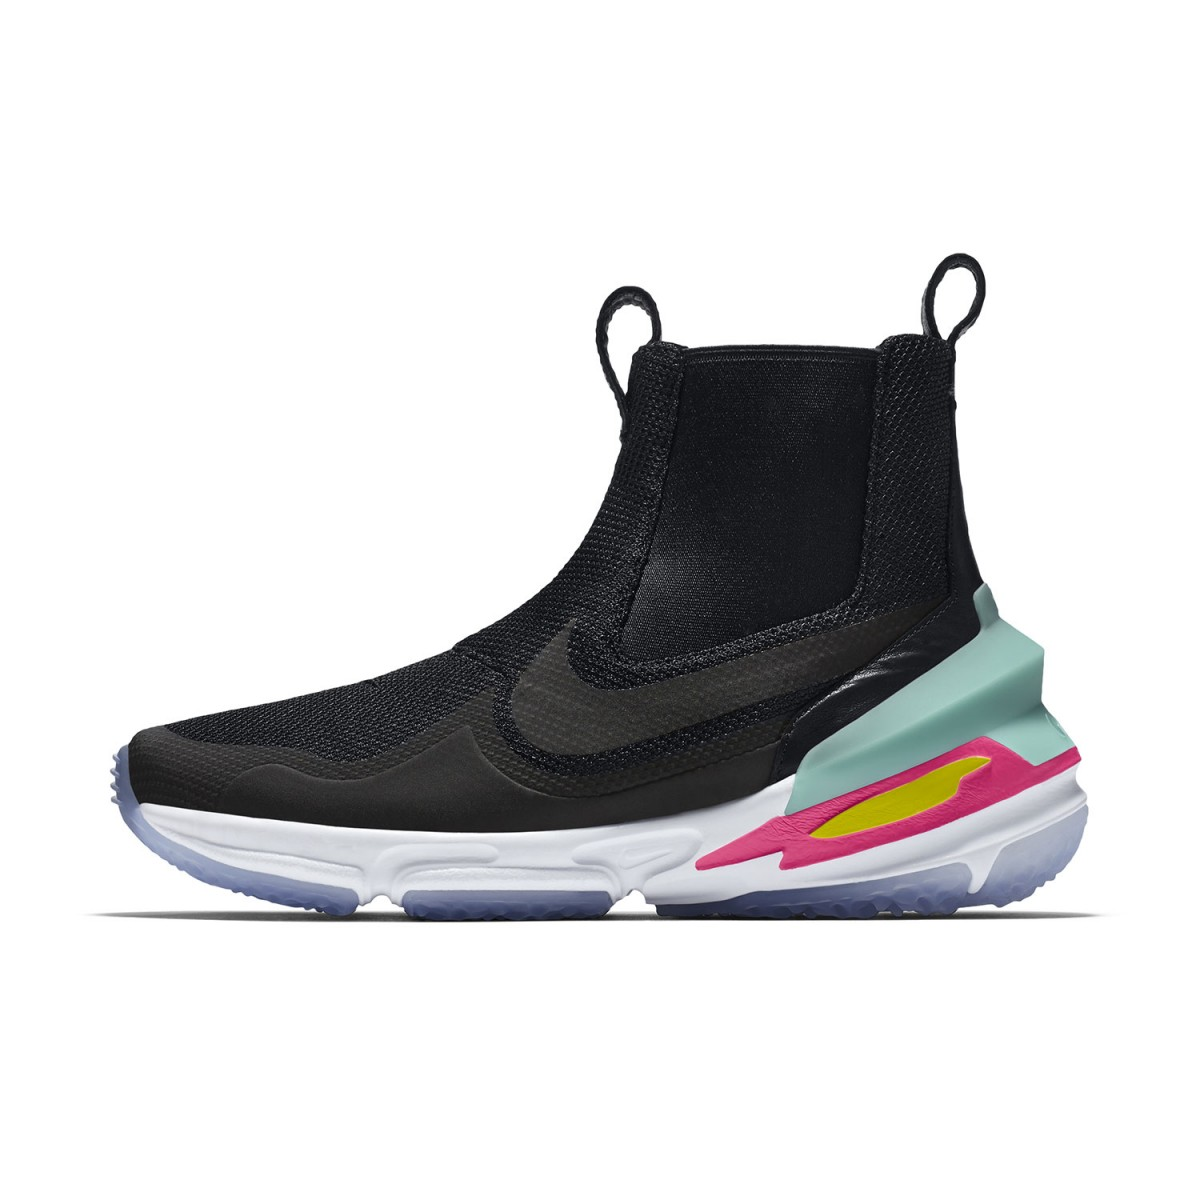 nikelab-air-zoom-legend-riccardo-tisci-4-1200x1200